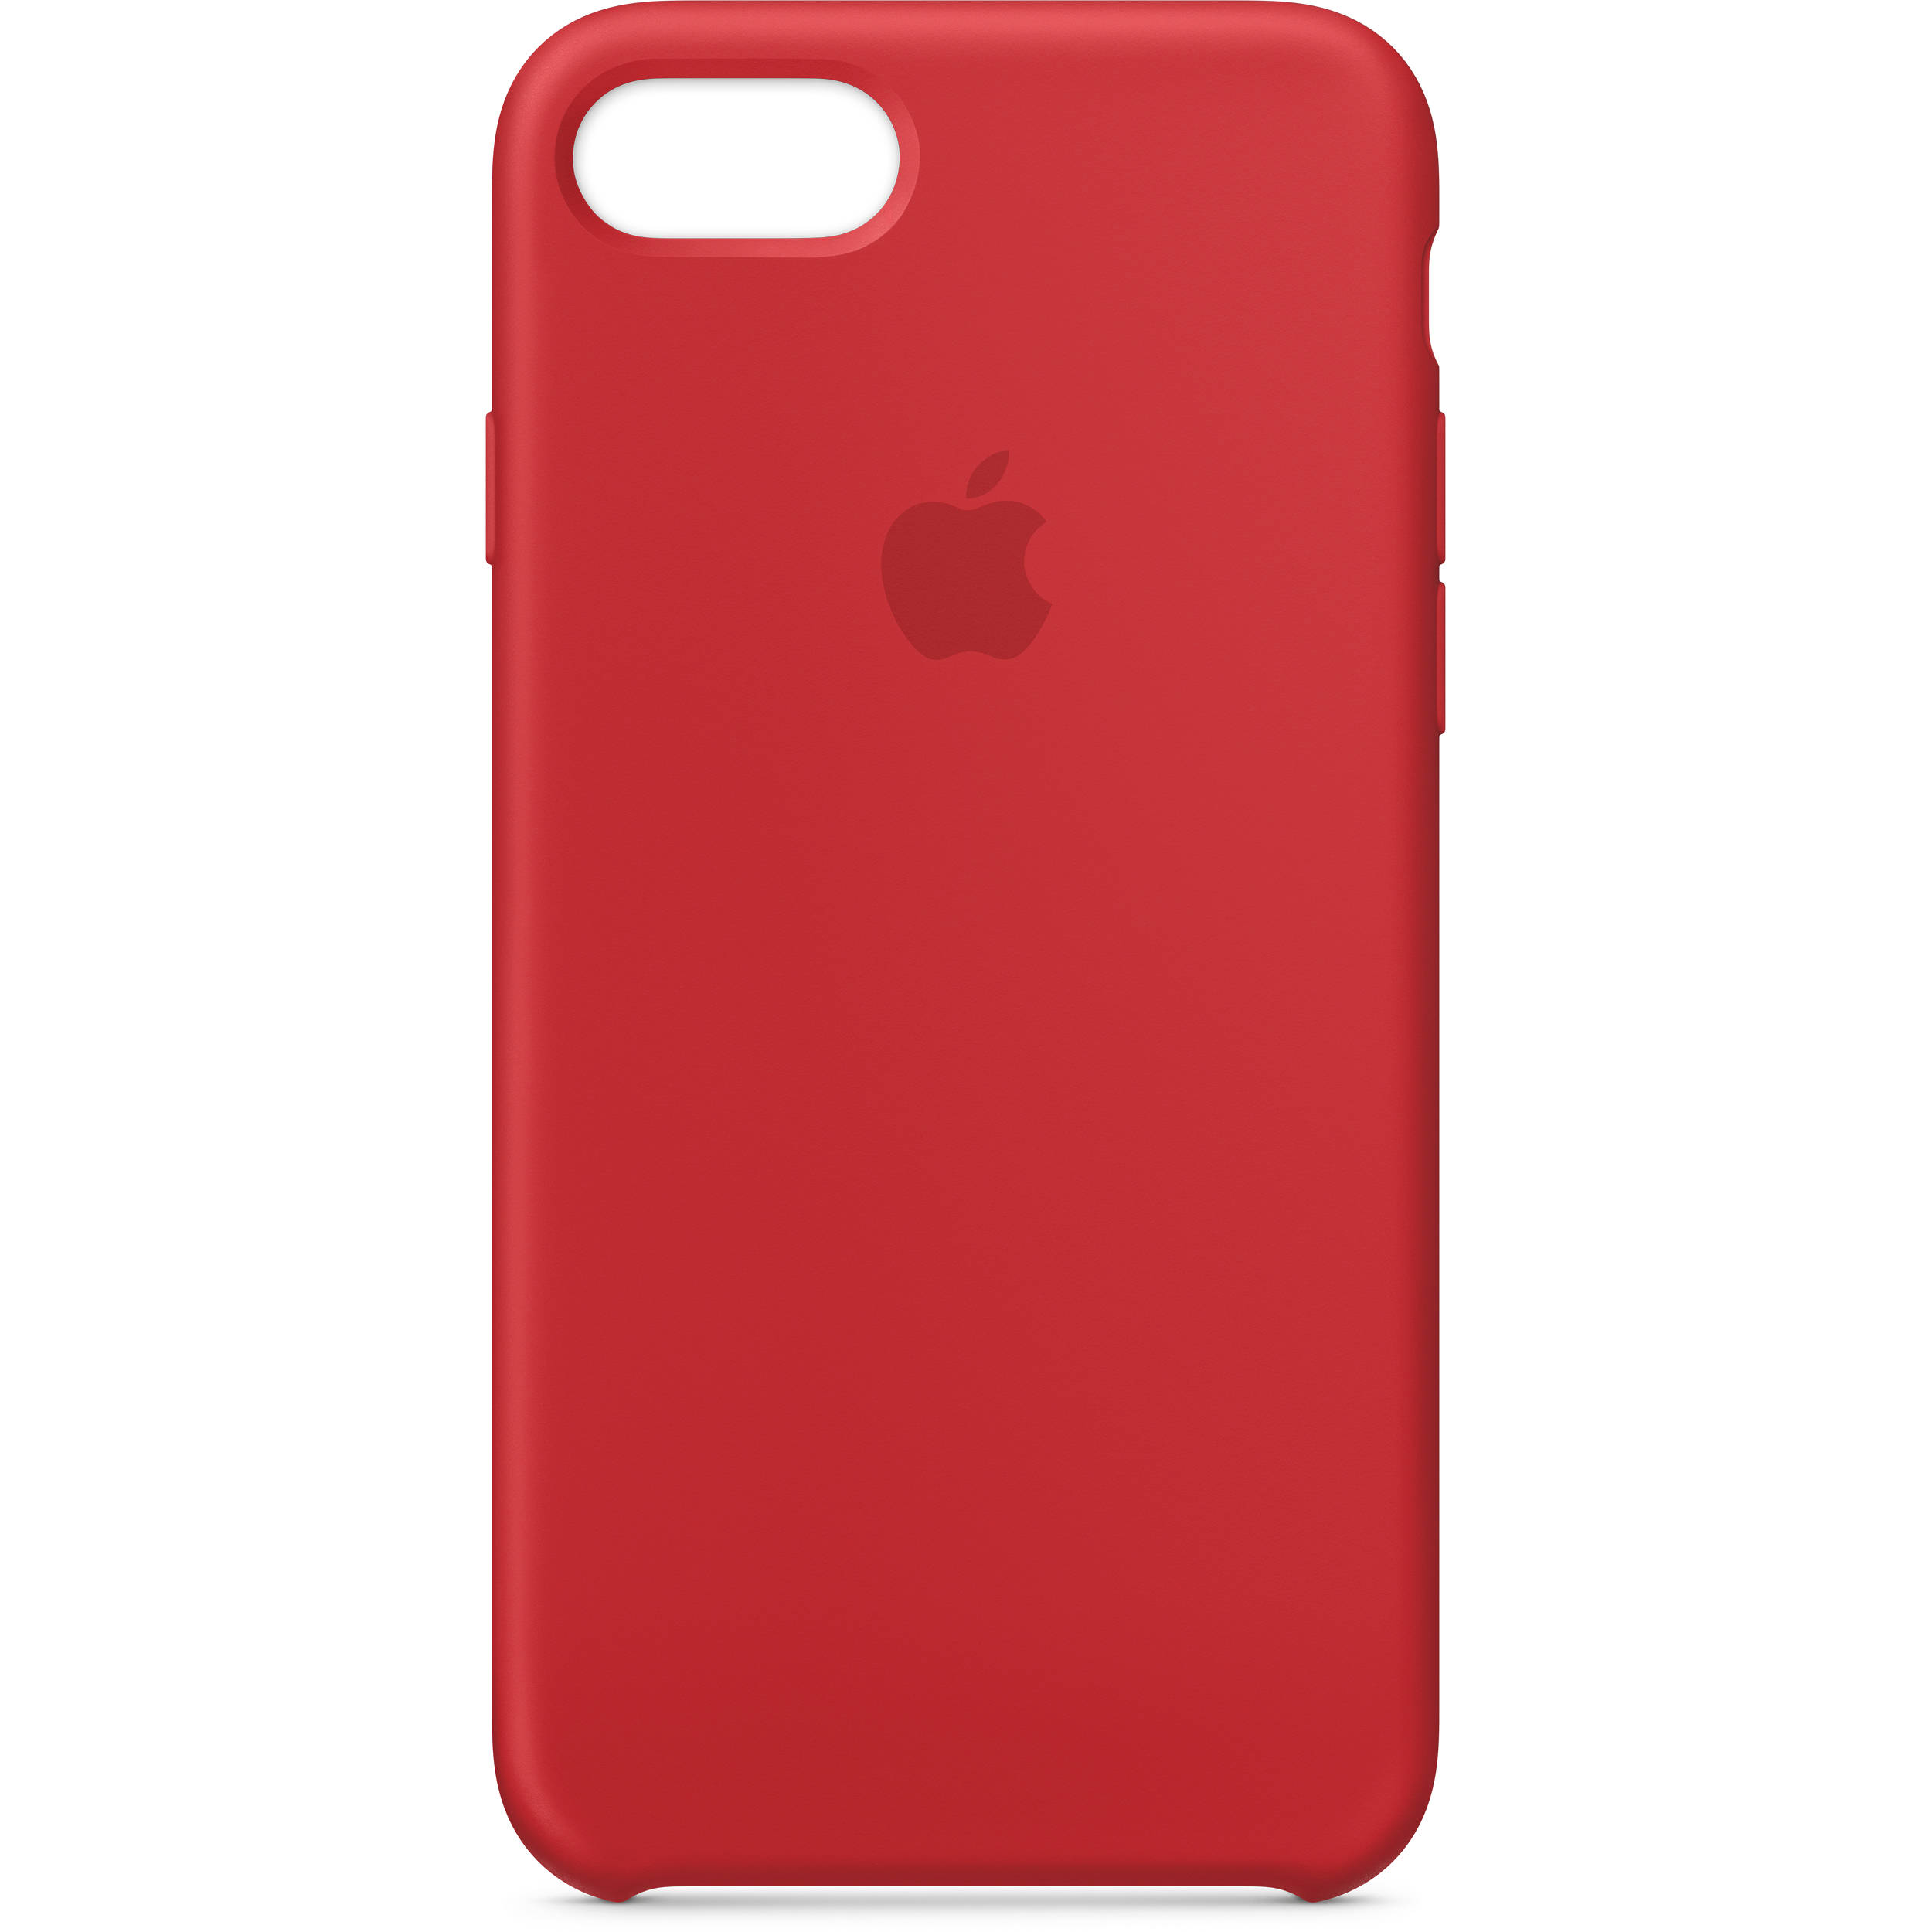 559d870bce Apple iPhone 7/8 Silicone Case ((PRODUCT)RED) MQGP2ZM/A B&H